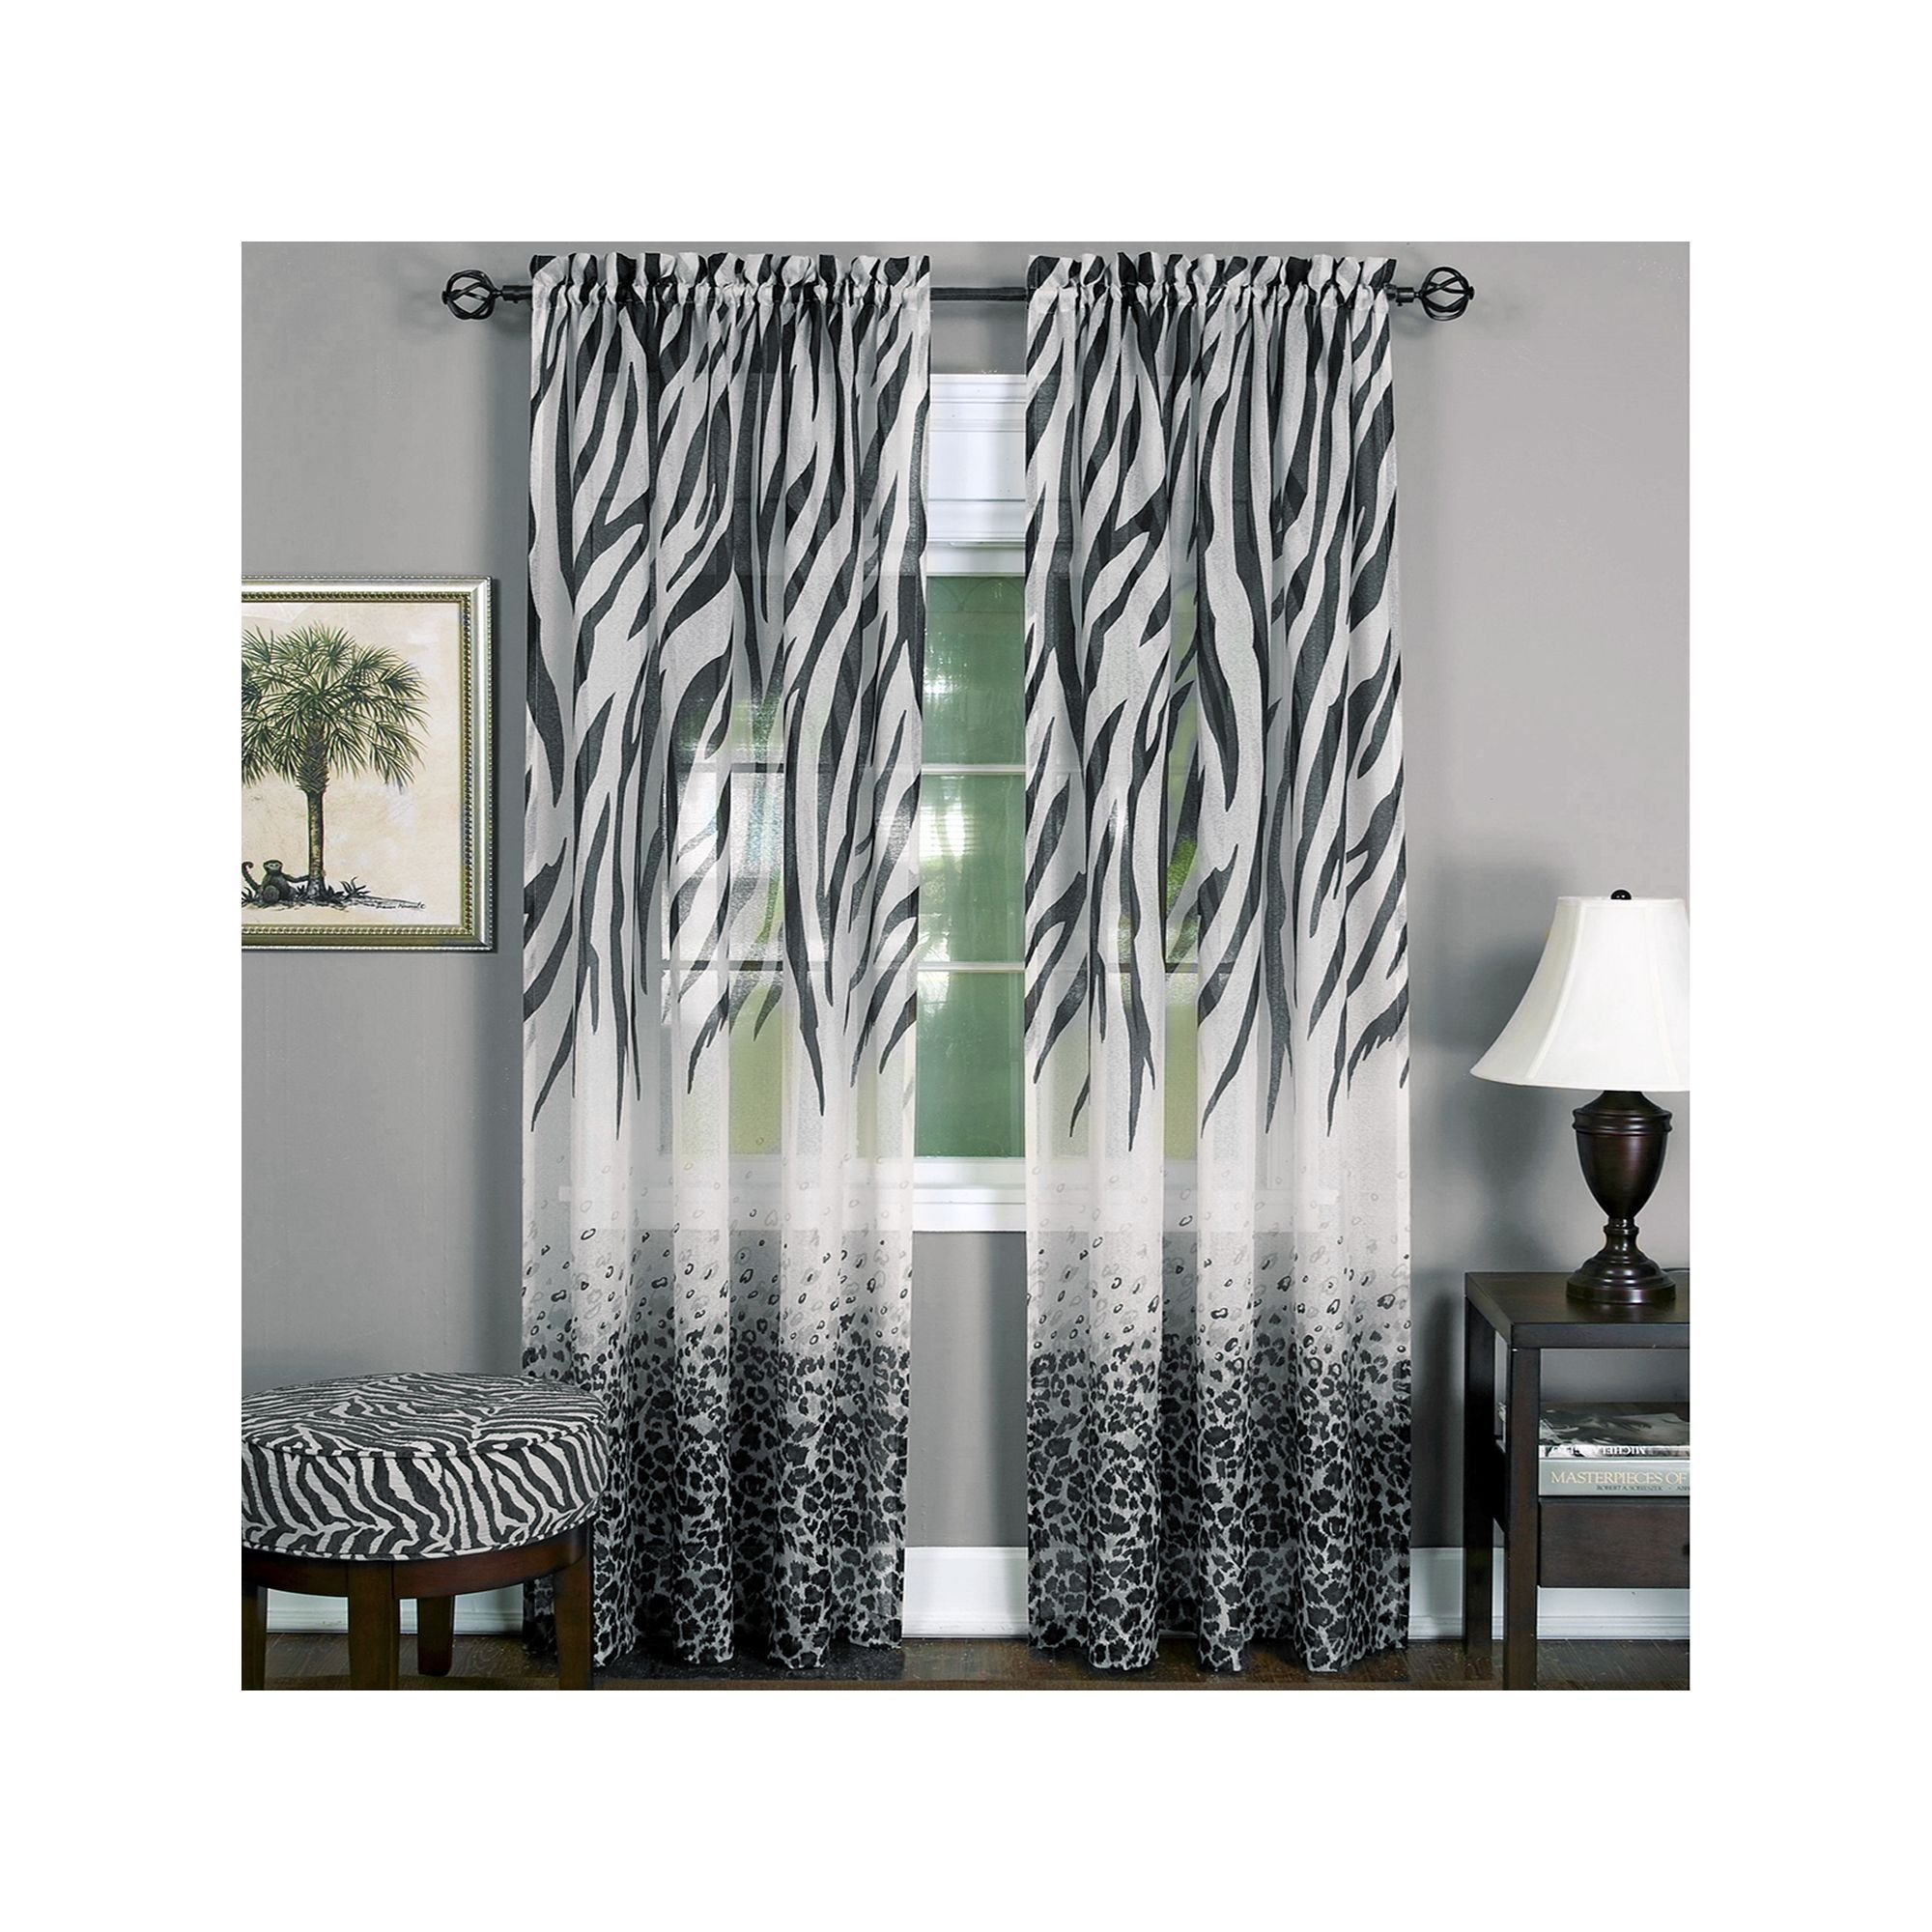 white panel damask kitchen curtain yellow valances curtains windows black and for drapes ideas window